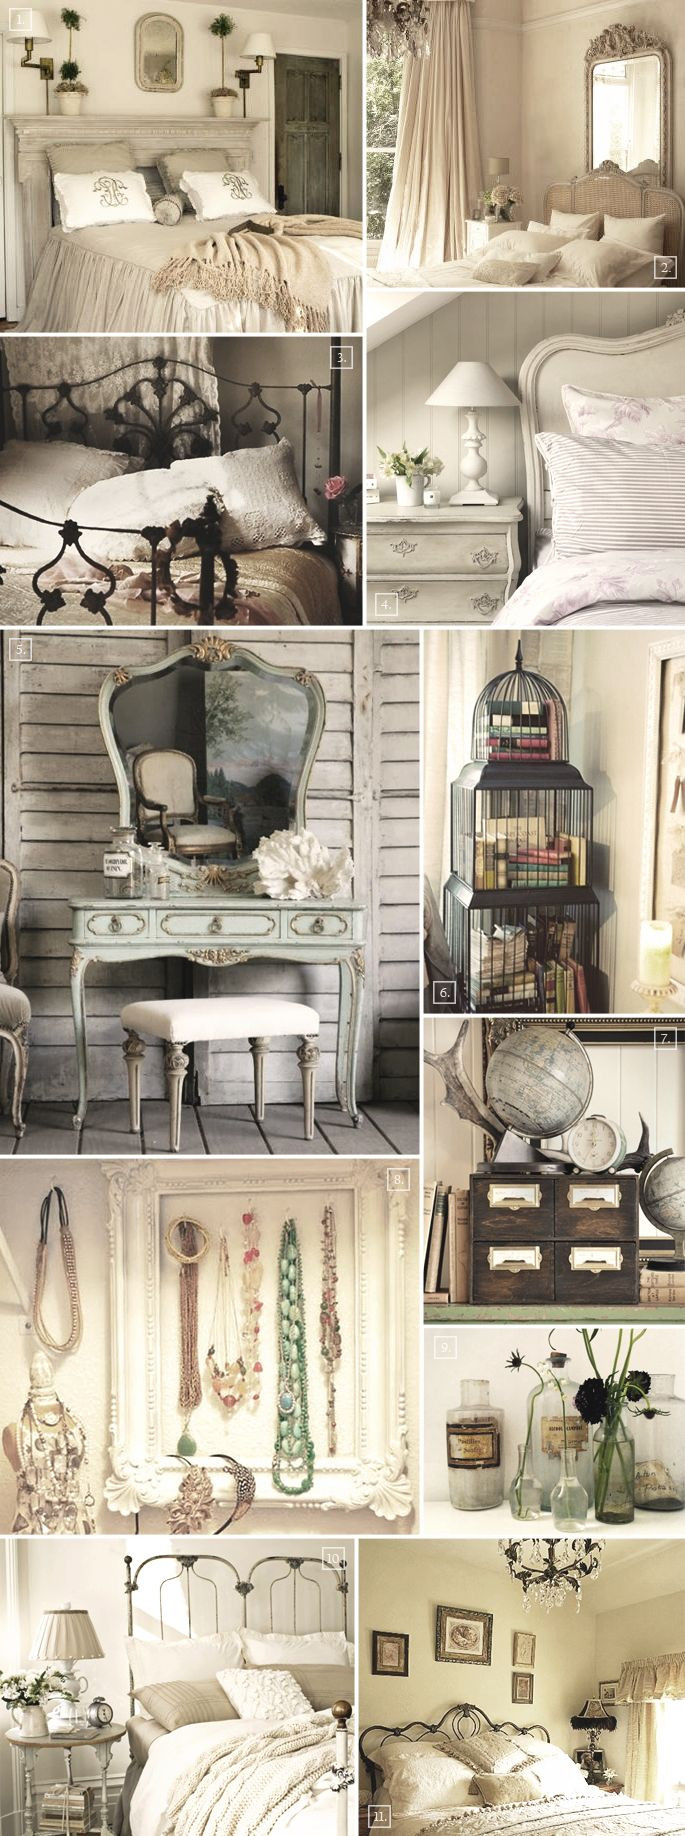 Best ideas about Vintage Bedroom Ideas . Save or Pin Vintage Bedroom Decor on Pinterest Now.